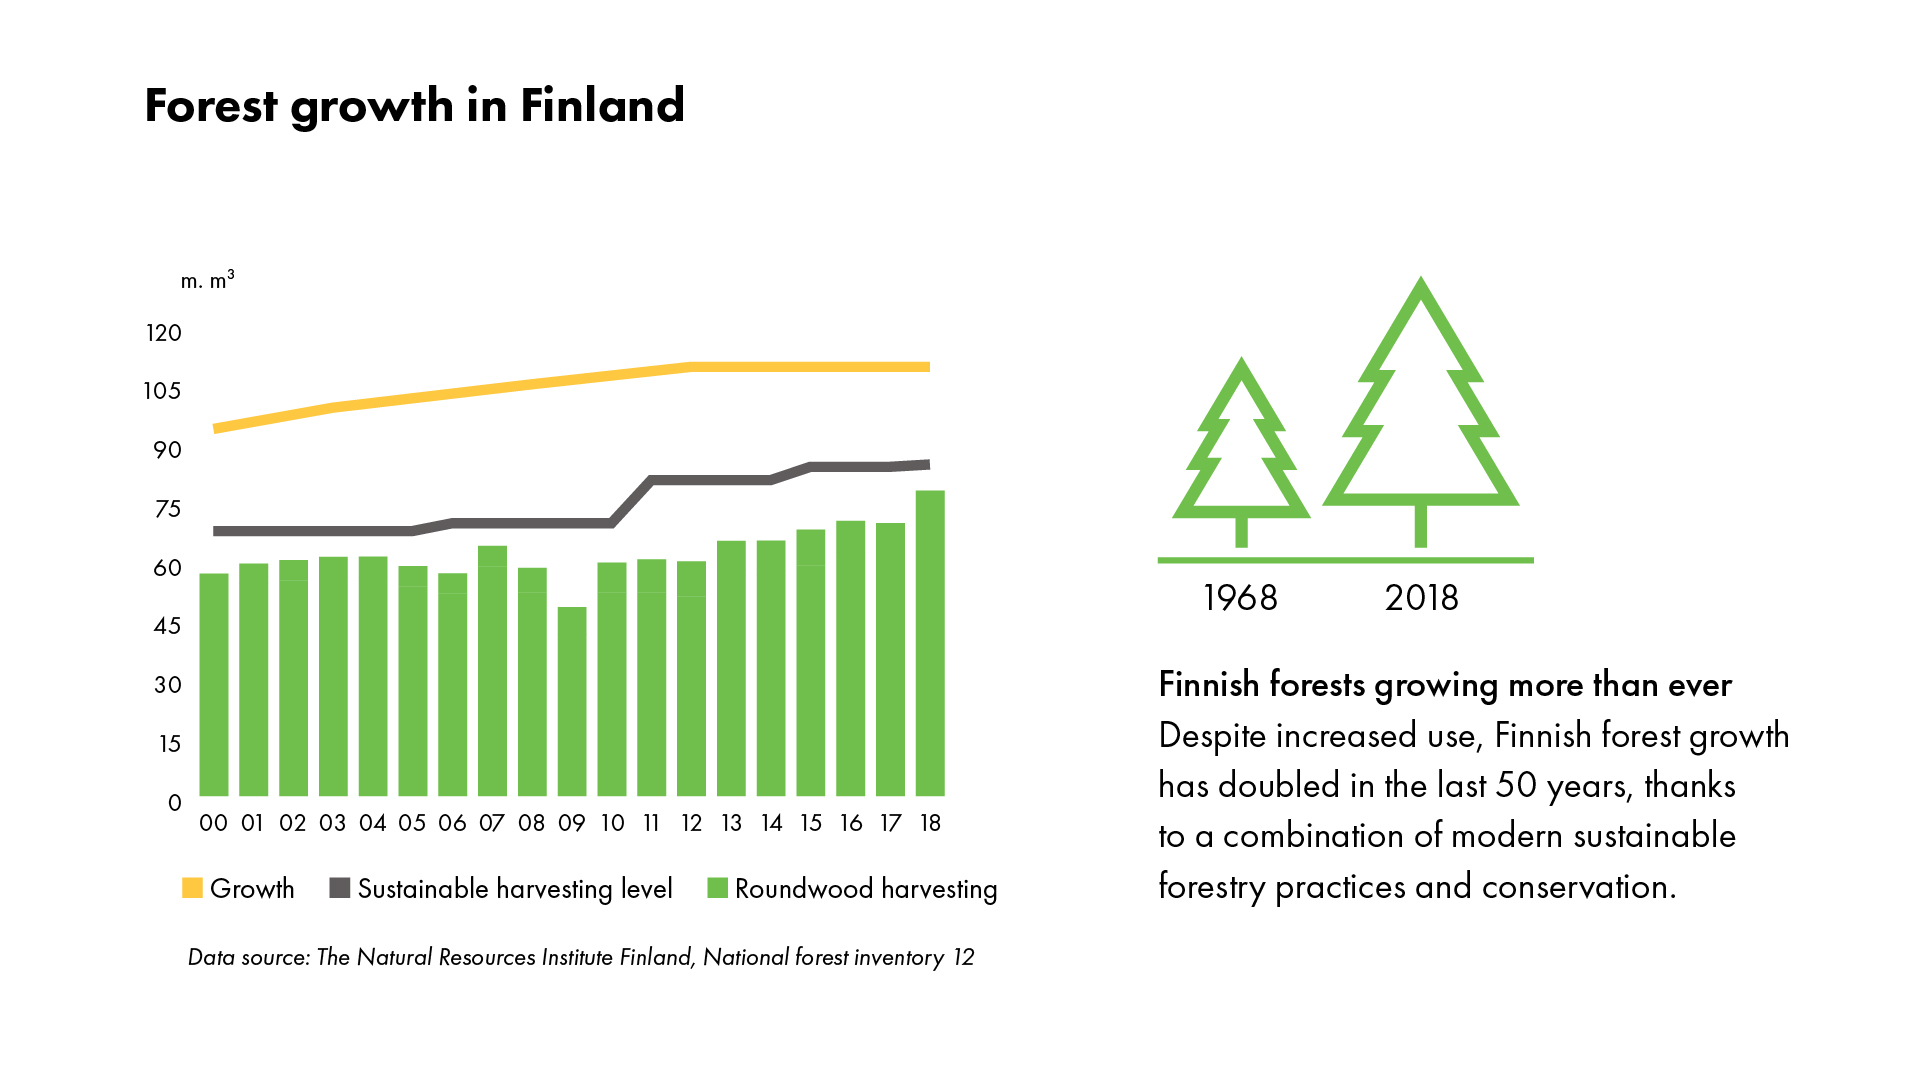 Managing forests' sustainably means optimizing their benefits, including timber and contributions to food security, to meet society's needs in a. Forests Upm Com